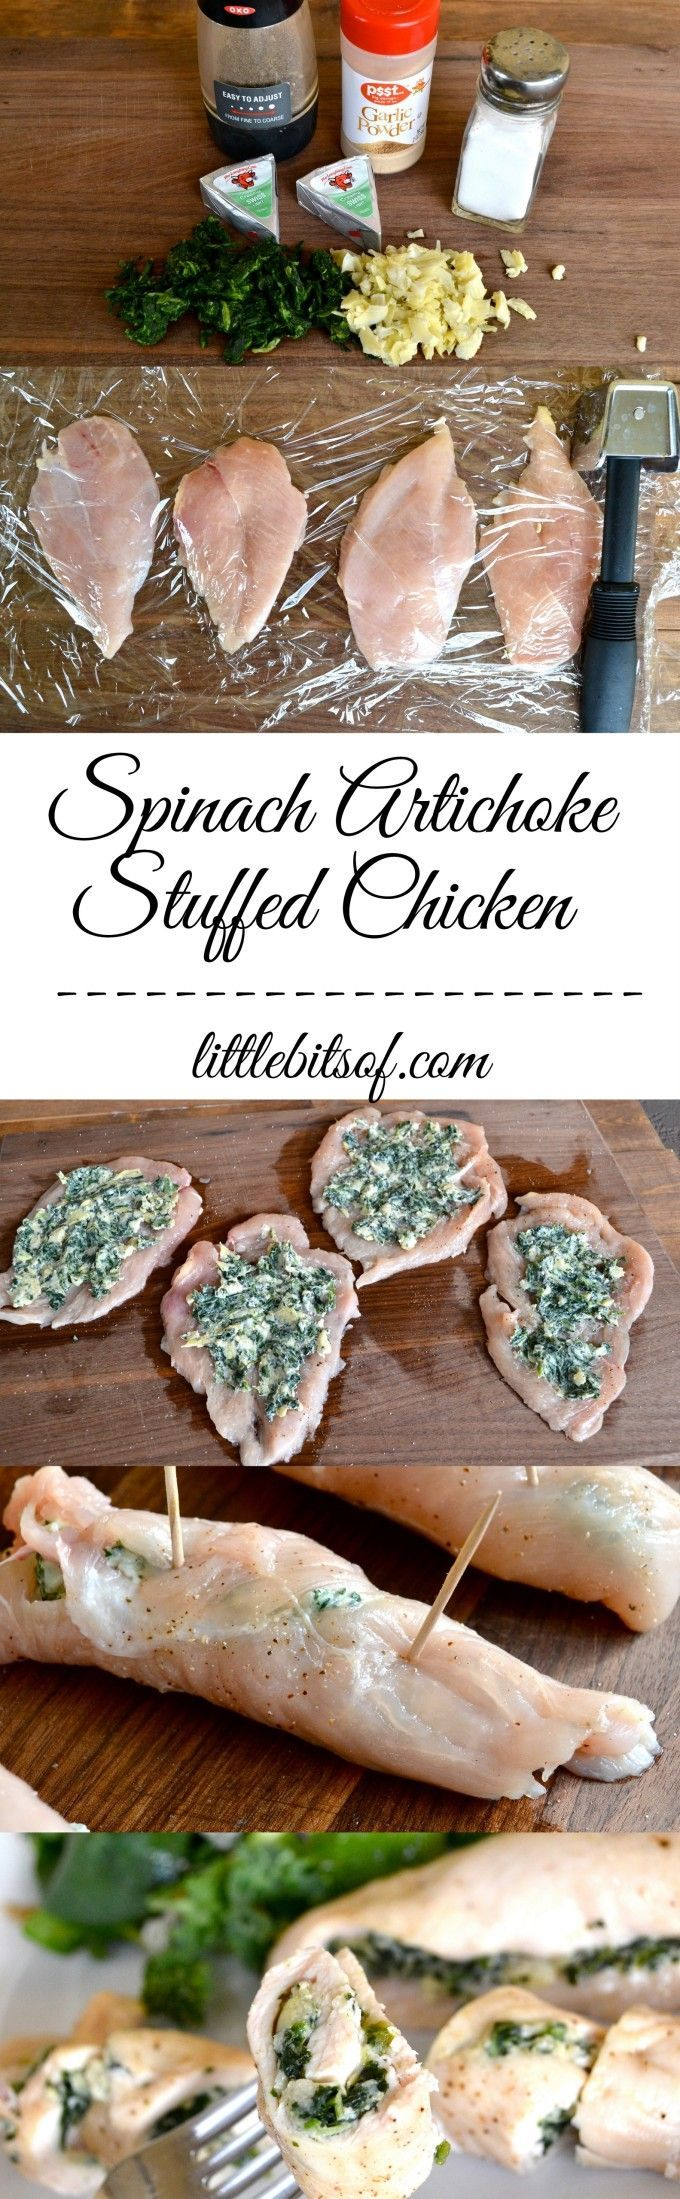 Spinach Artichoke Stuffed Chicken - Simple and only a few ingredients, cutting the chicken breasts in half then pounding makes them thin, stuff with laughing cow spinach artichoke mix, roll and bake! only 112 calories per chicken roll. #healthy